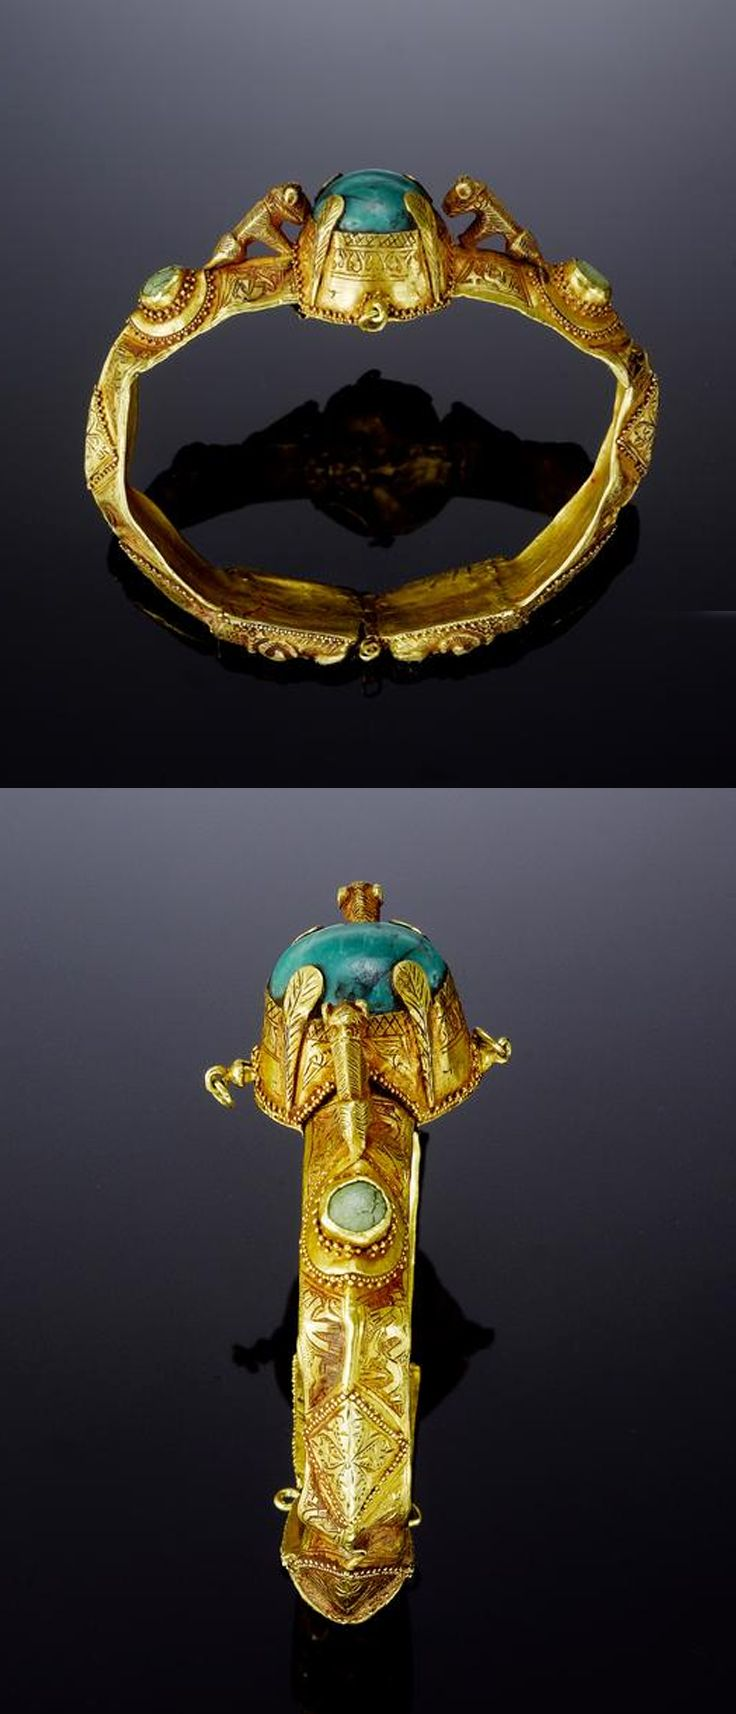 Persia | Seljuk turquoise set gold bangle | 12th century | 14'400£ ~ sold (Oct '07)